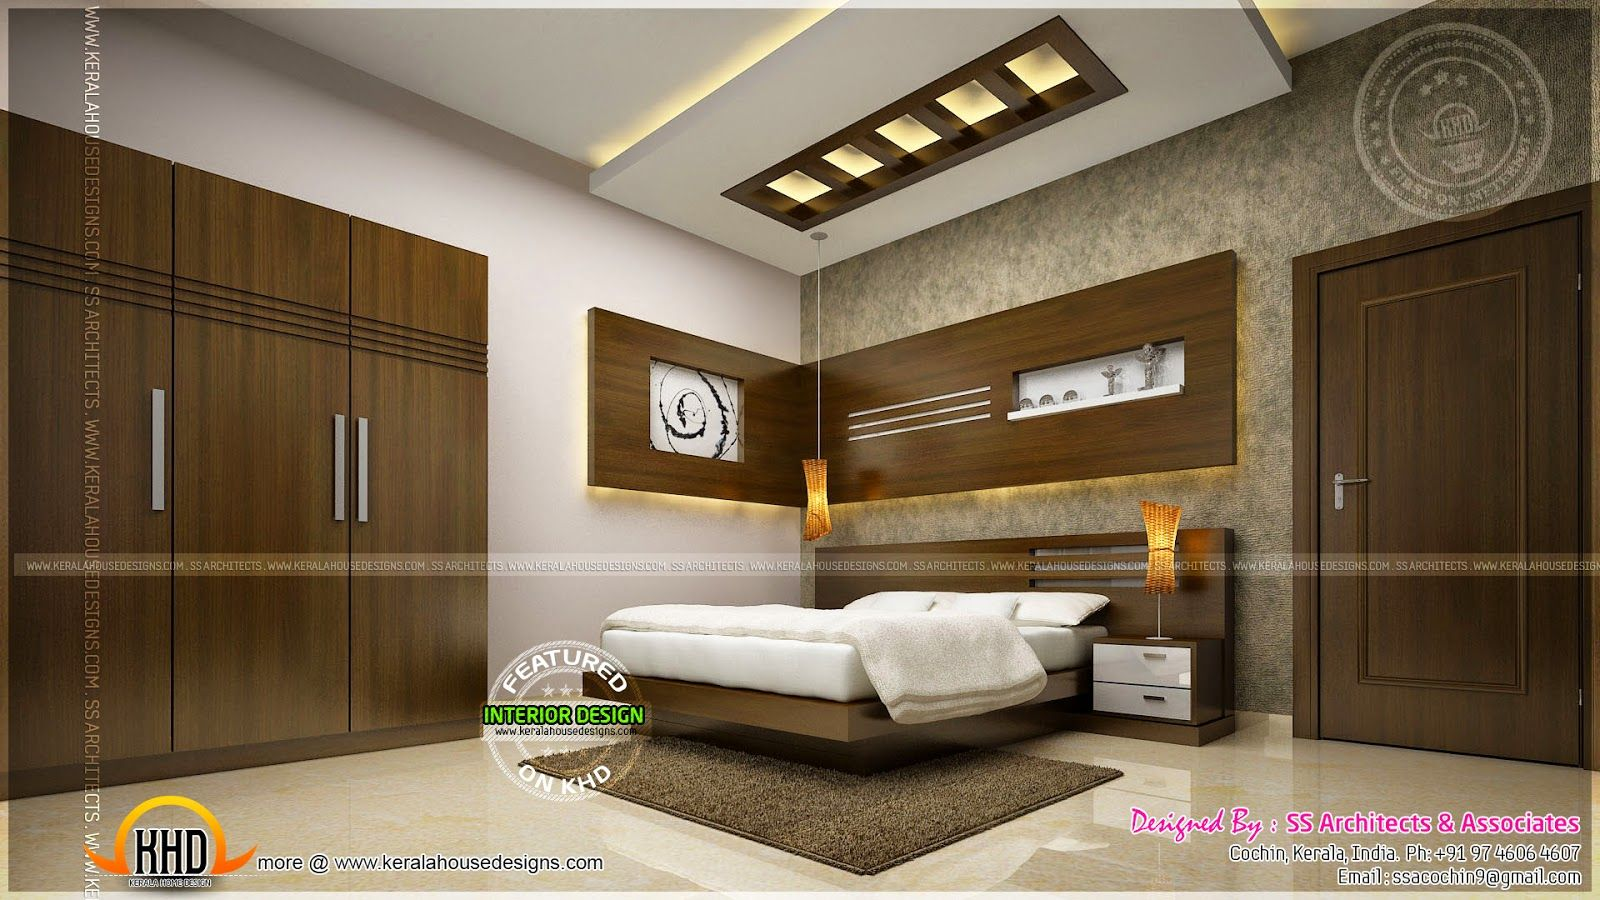 Indian Master Bedroom Interior Design  Google Search  Saravanan Amazing Bedroom Interior Design In India Design Ideas